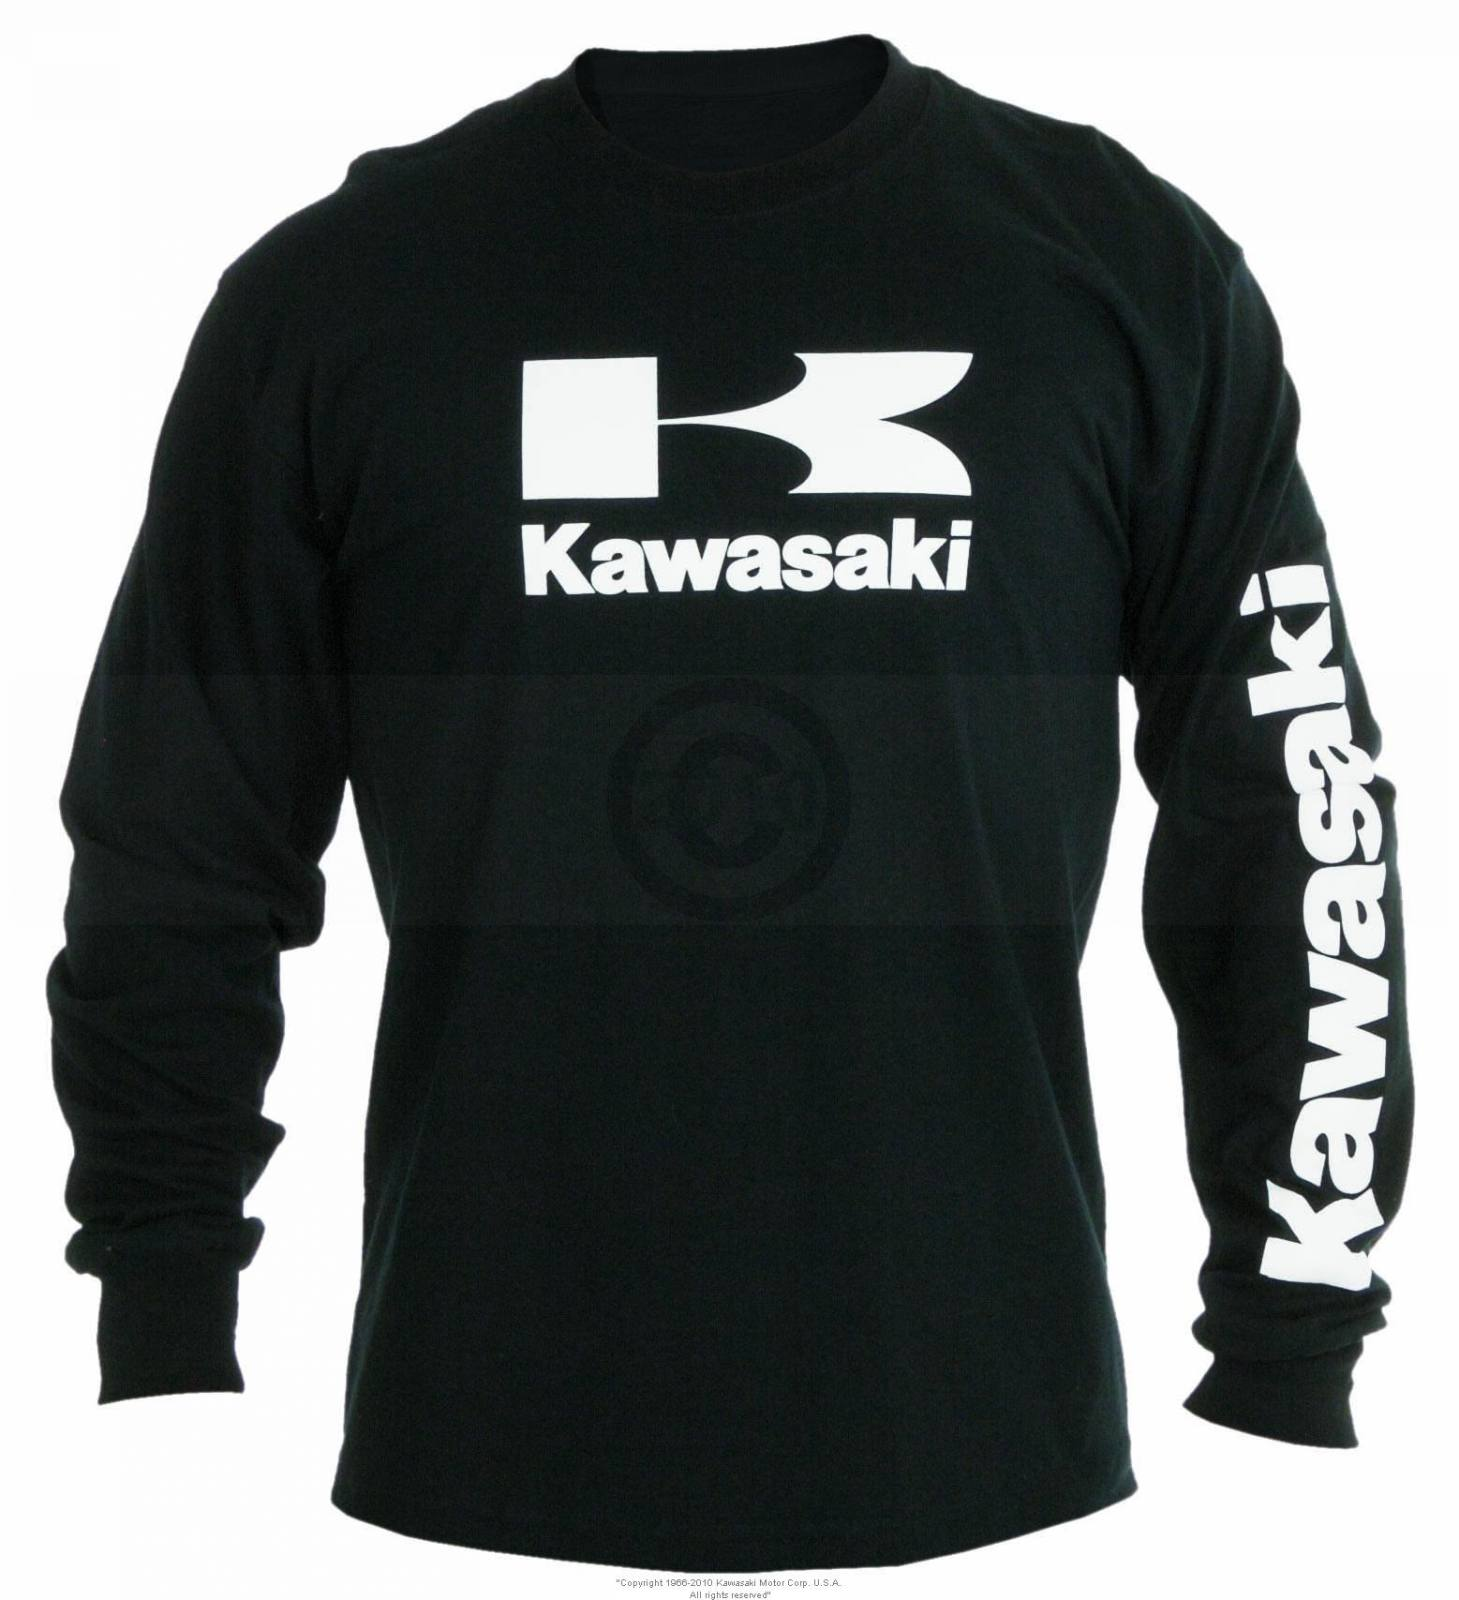 STACKED LOGO LONG SLEEVE T-SHIRT for sale in Indianapolis, IN ...